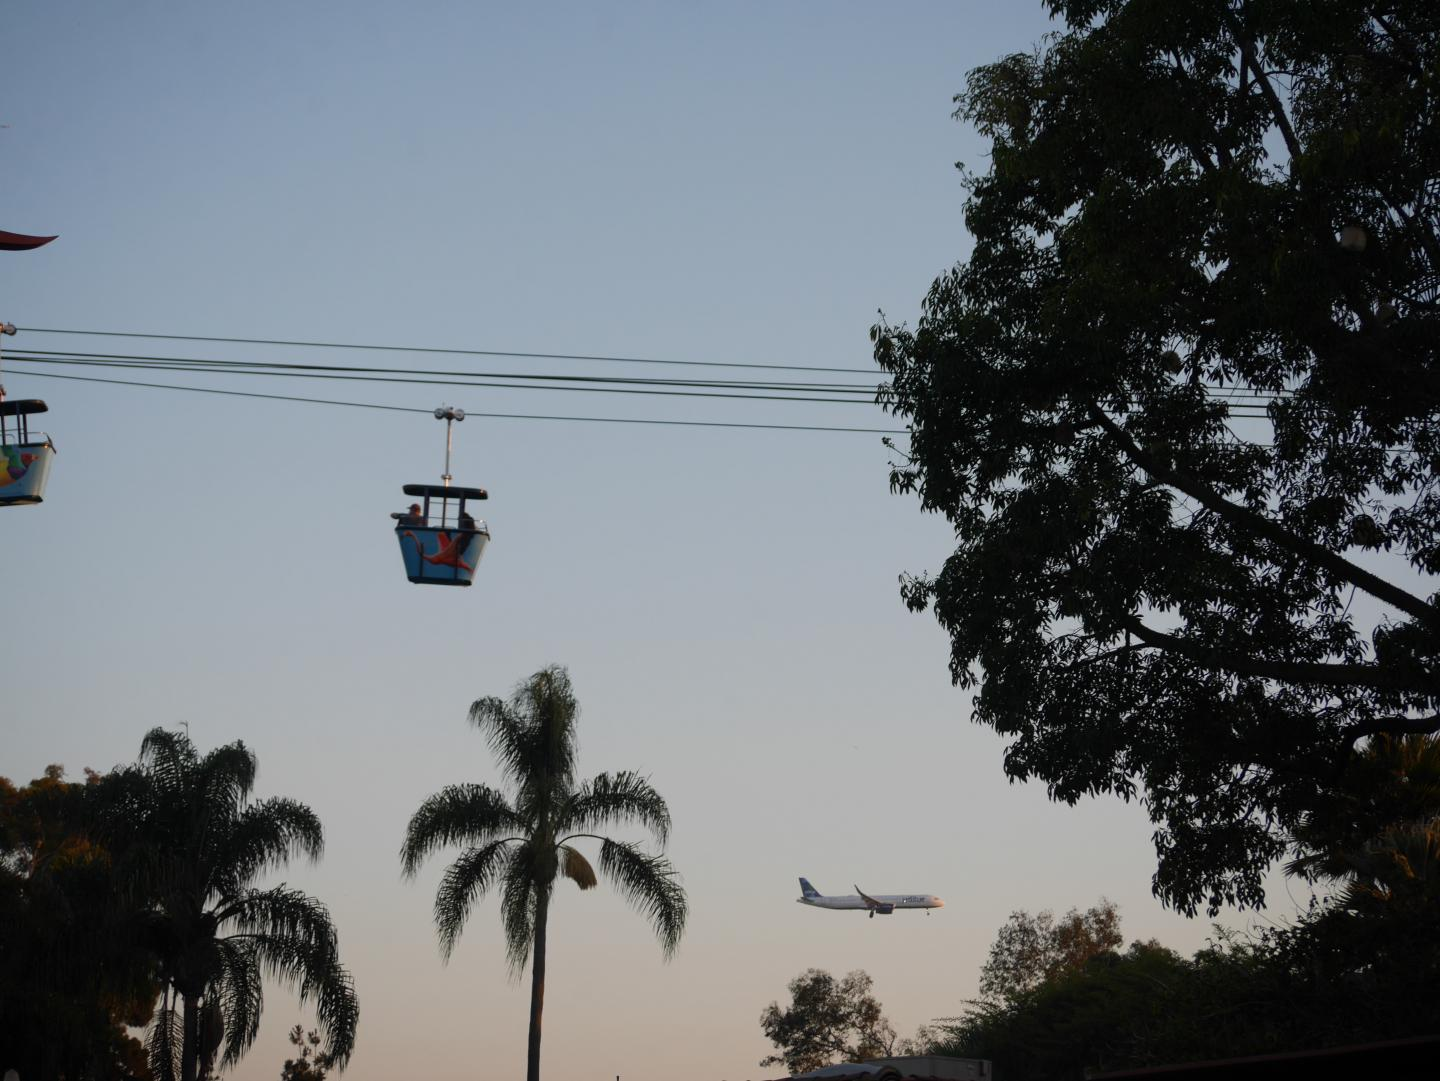 Teens ride the cable cars at the San Diego Zoo during their summer service program in California.